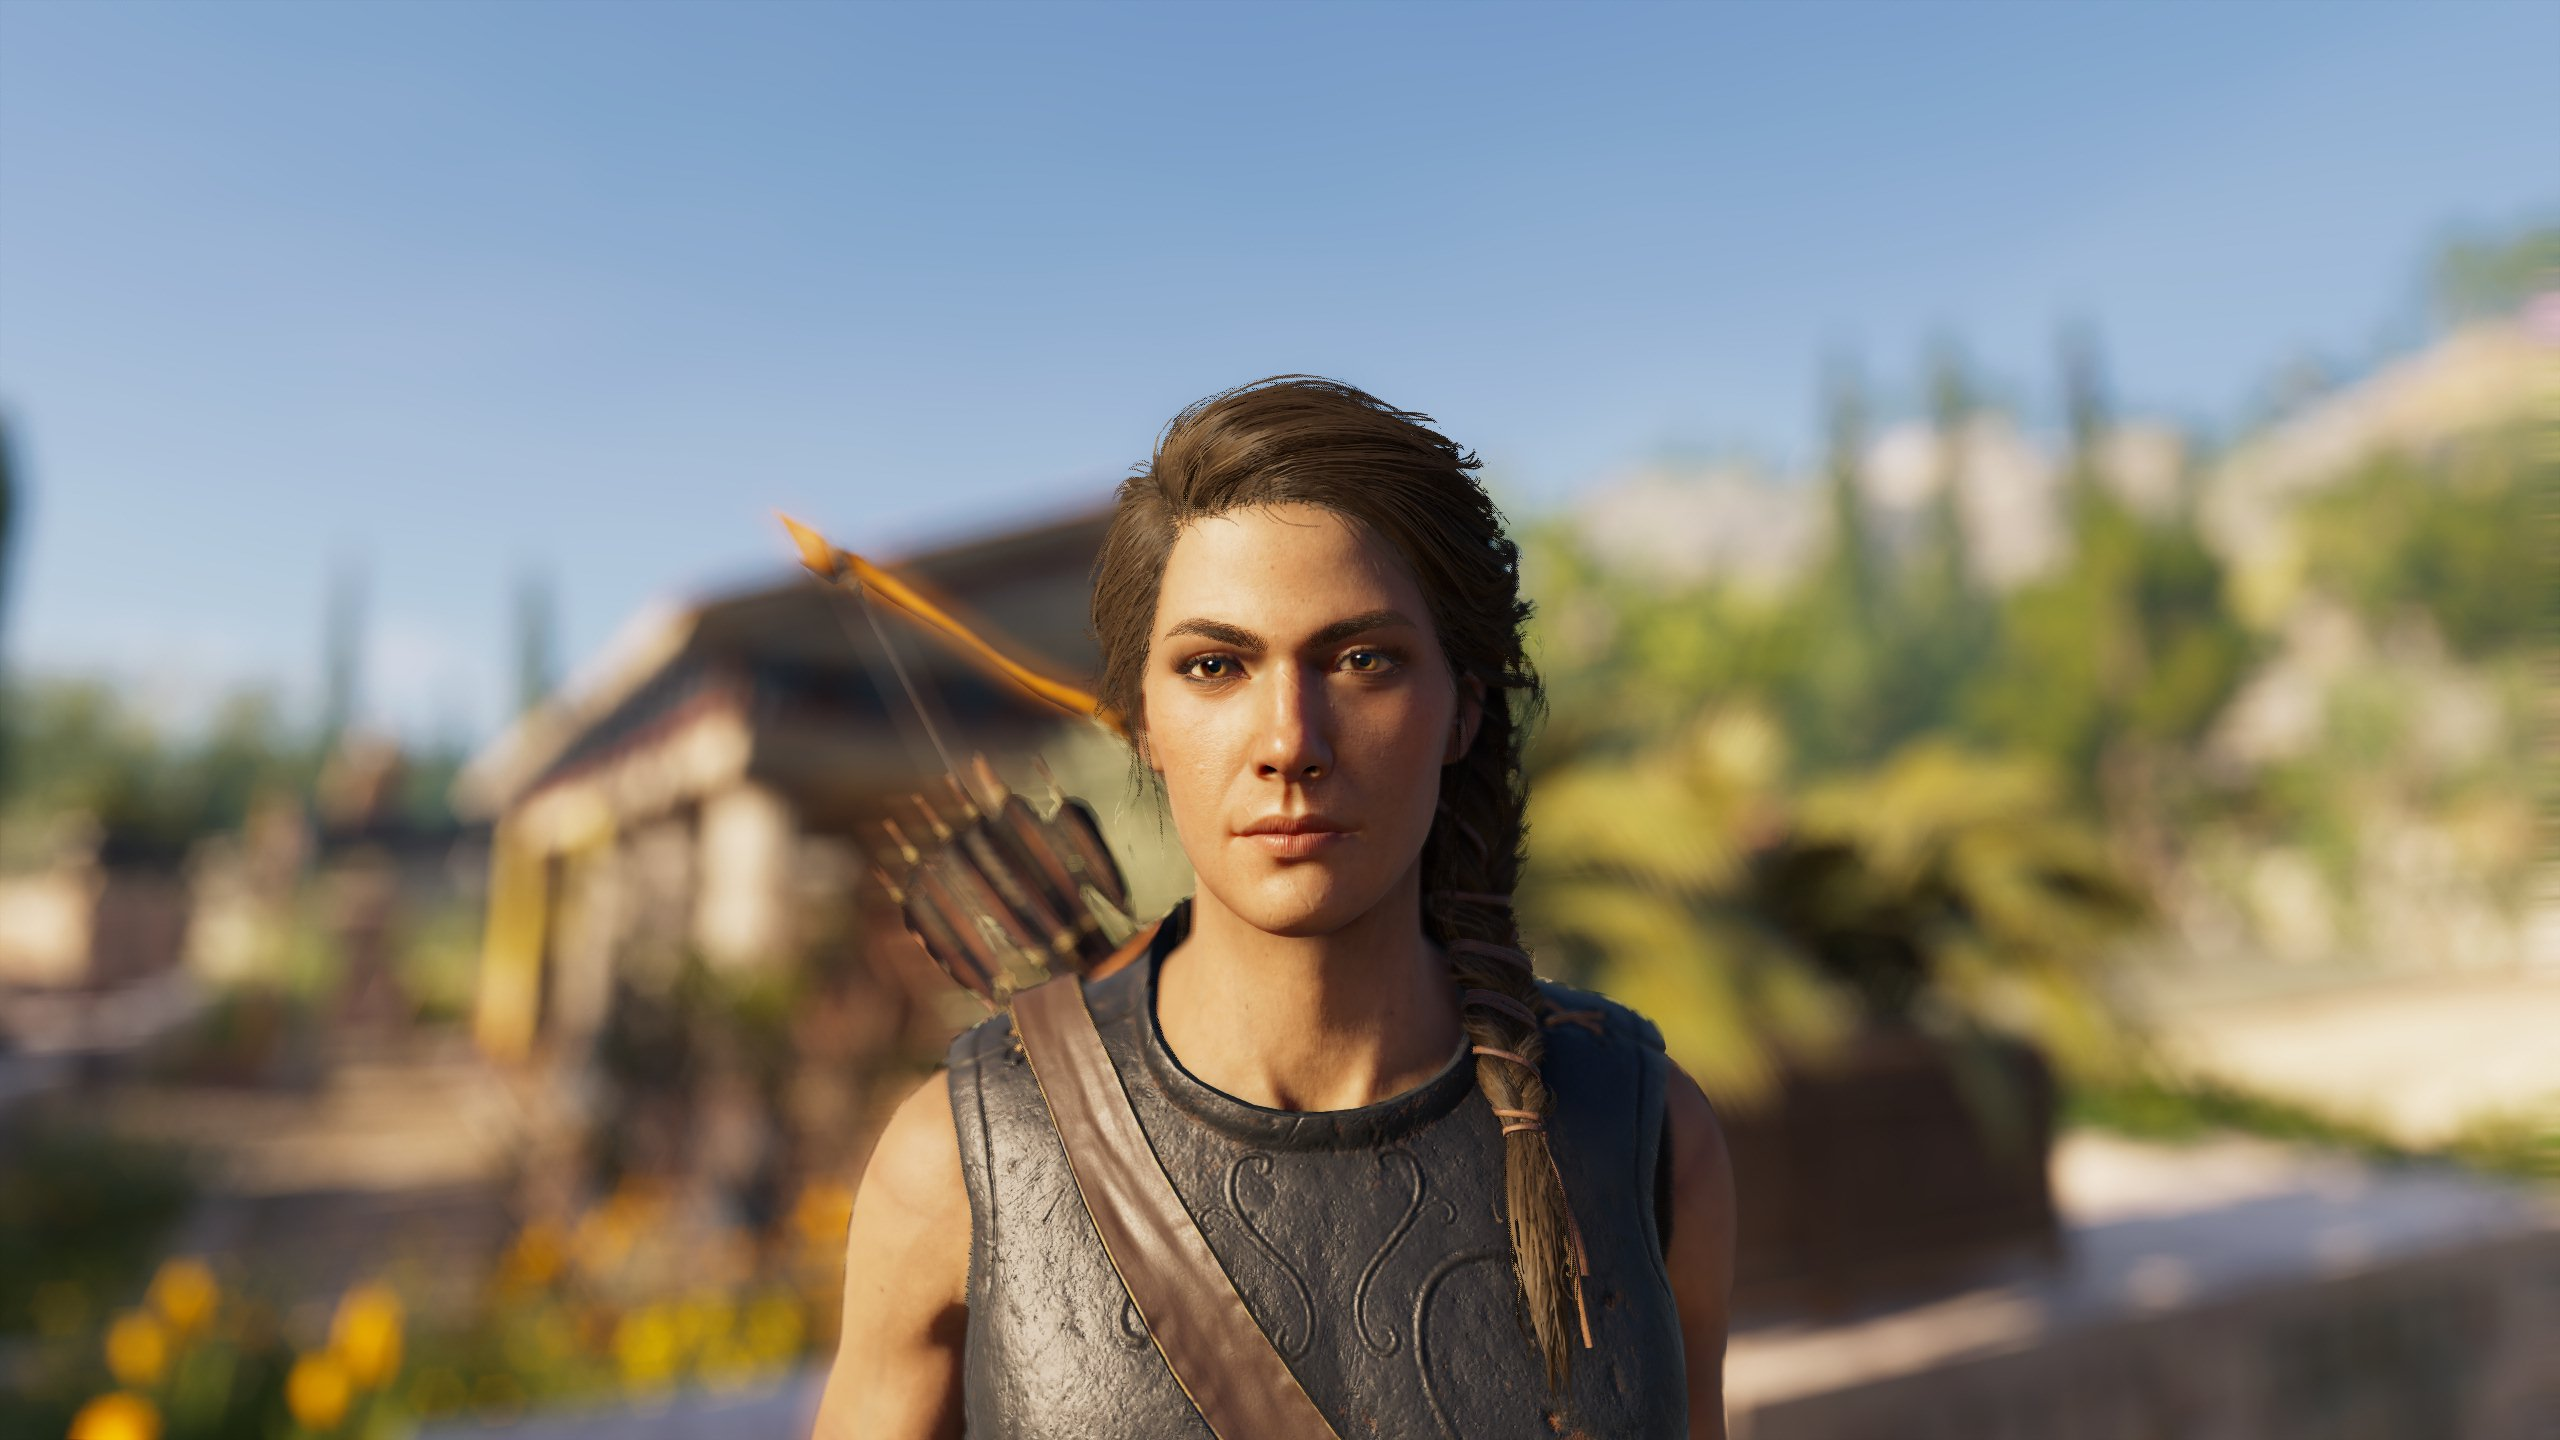 Assassin's Creed Odyssey's best feature costs an extra 10 bucks